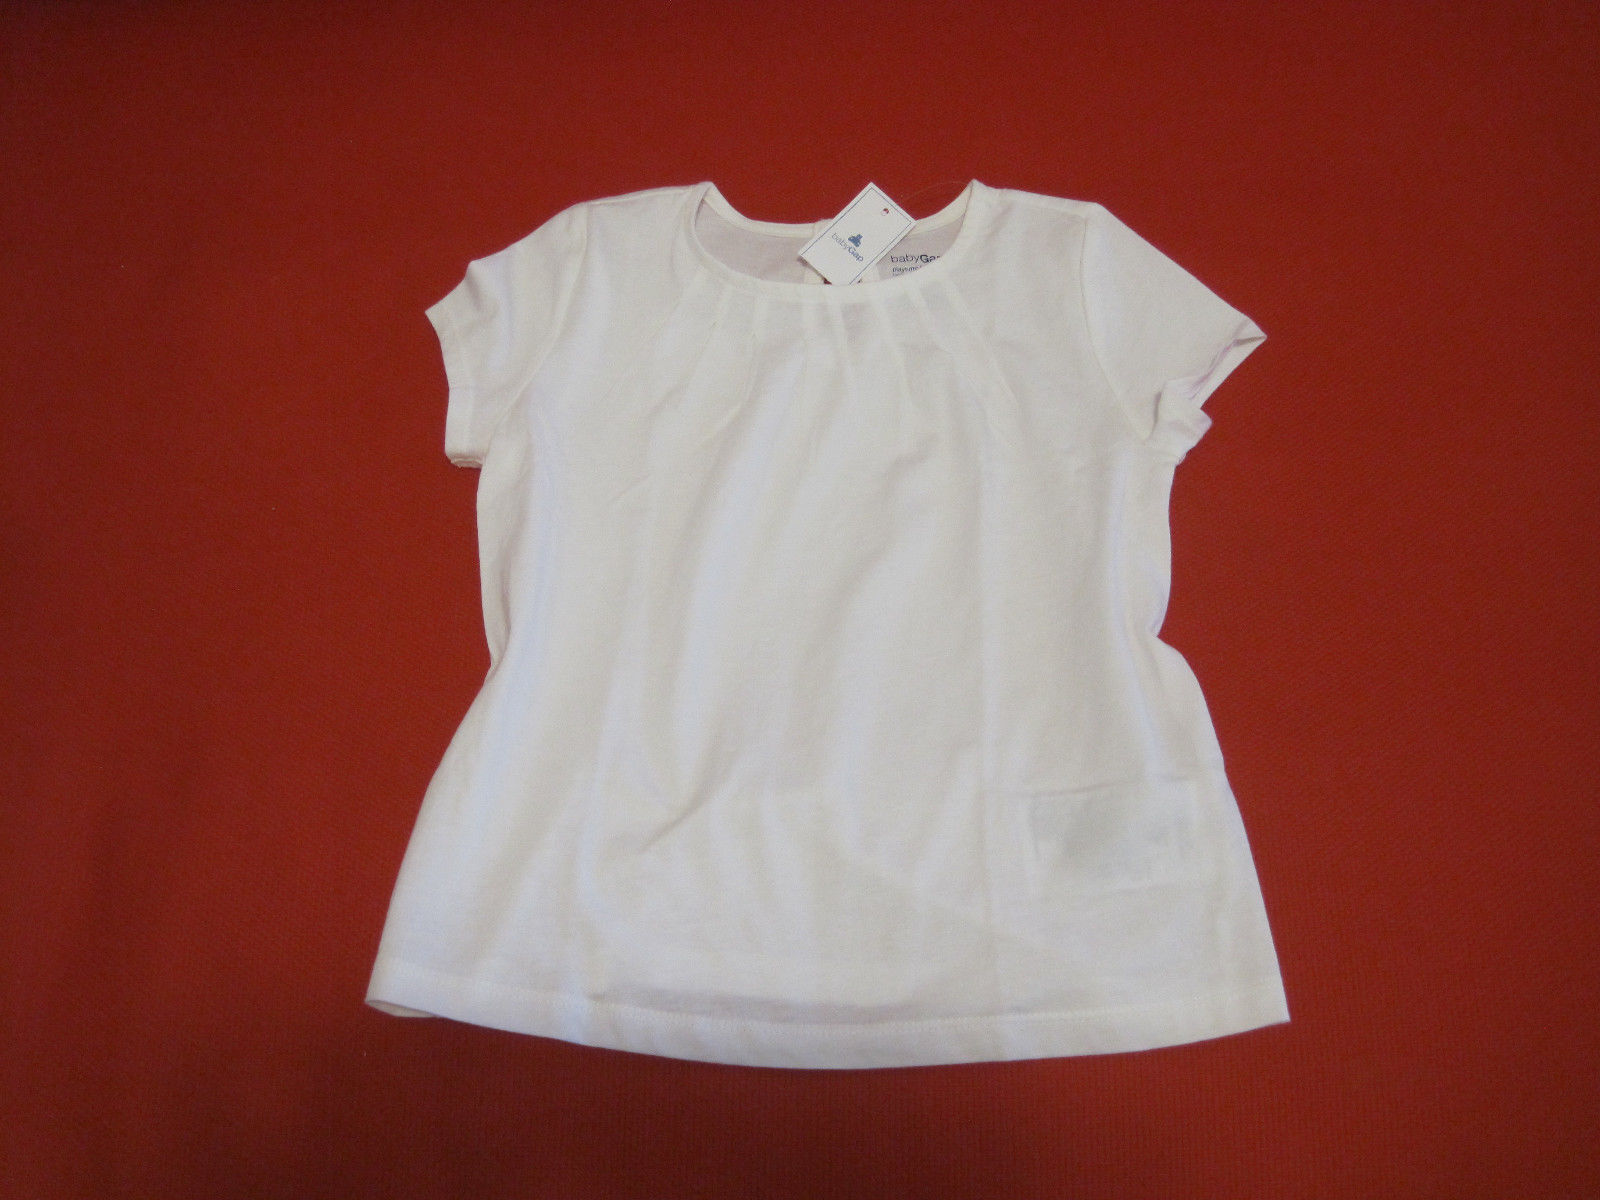 Gap Baby Girls Tee Top  Sz 4 Off White Pleated Short Sleeve 100% Cotton New